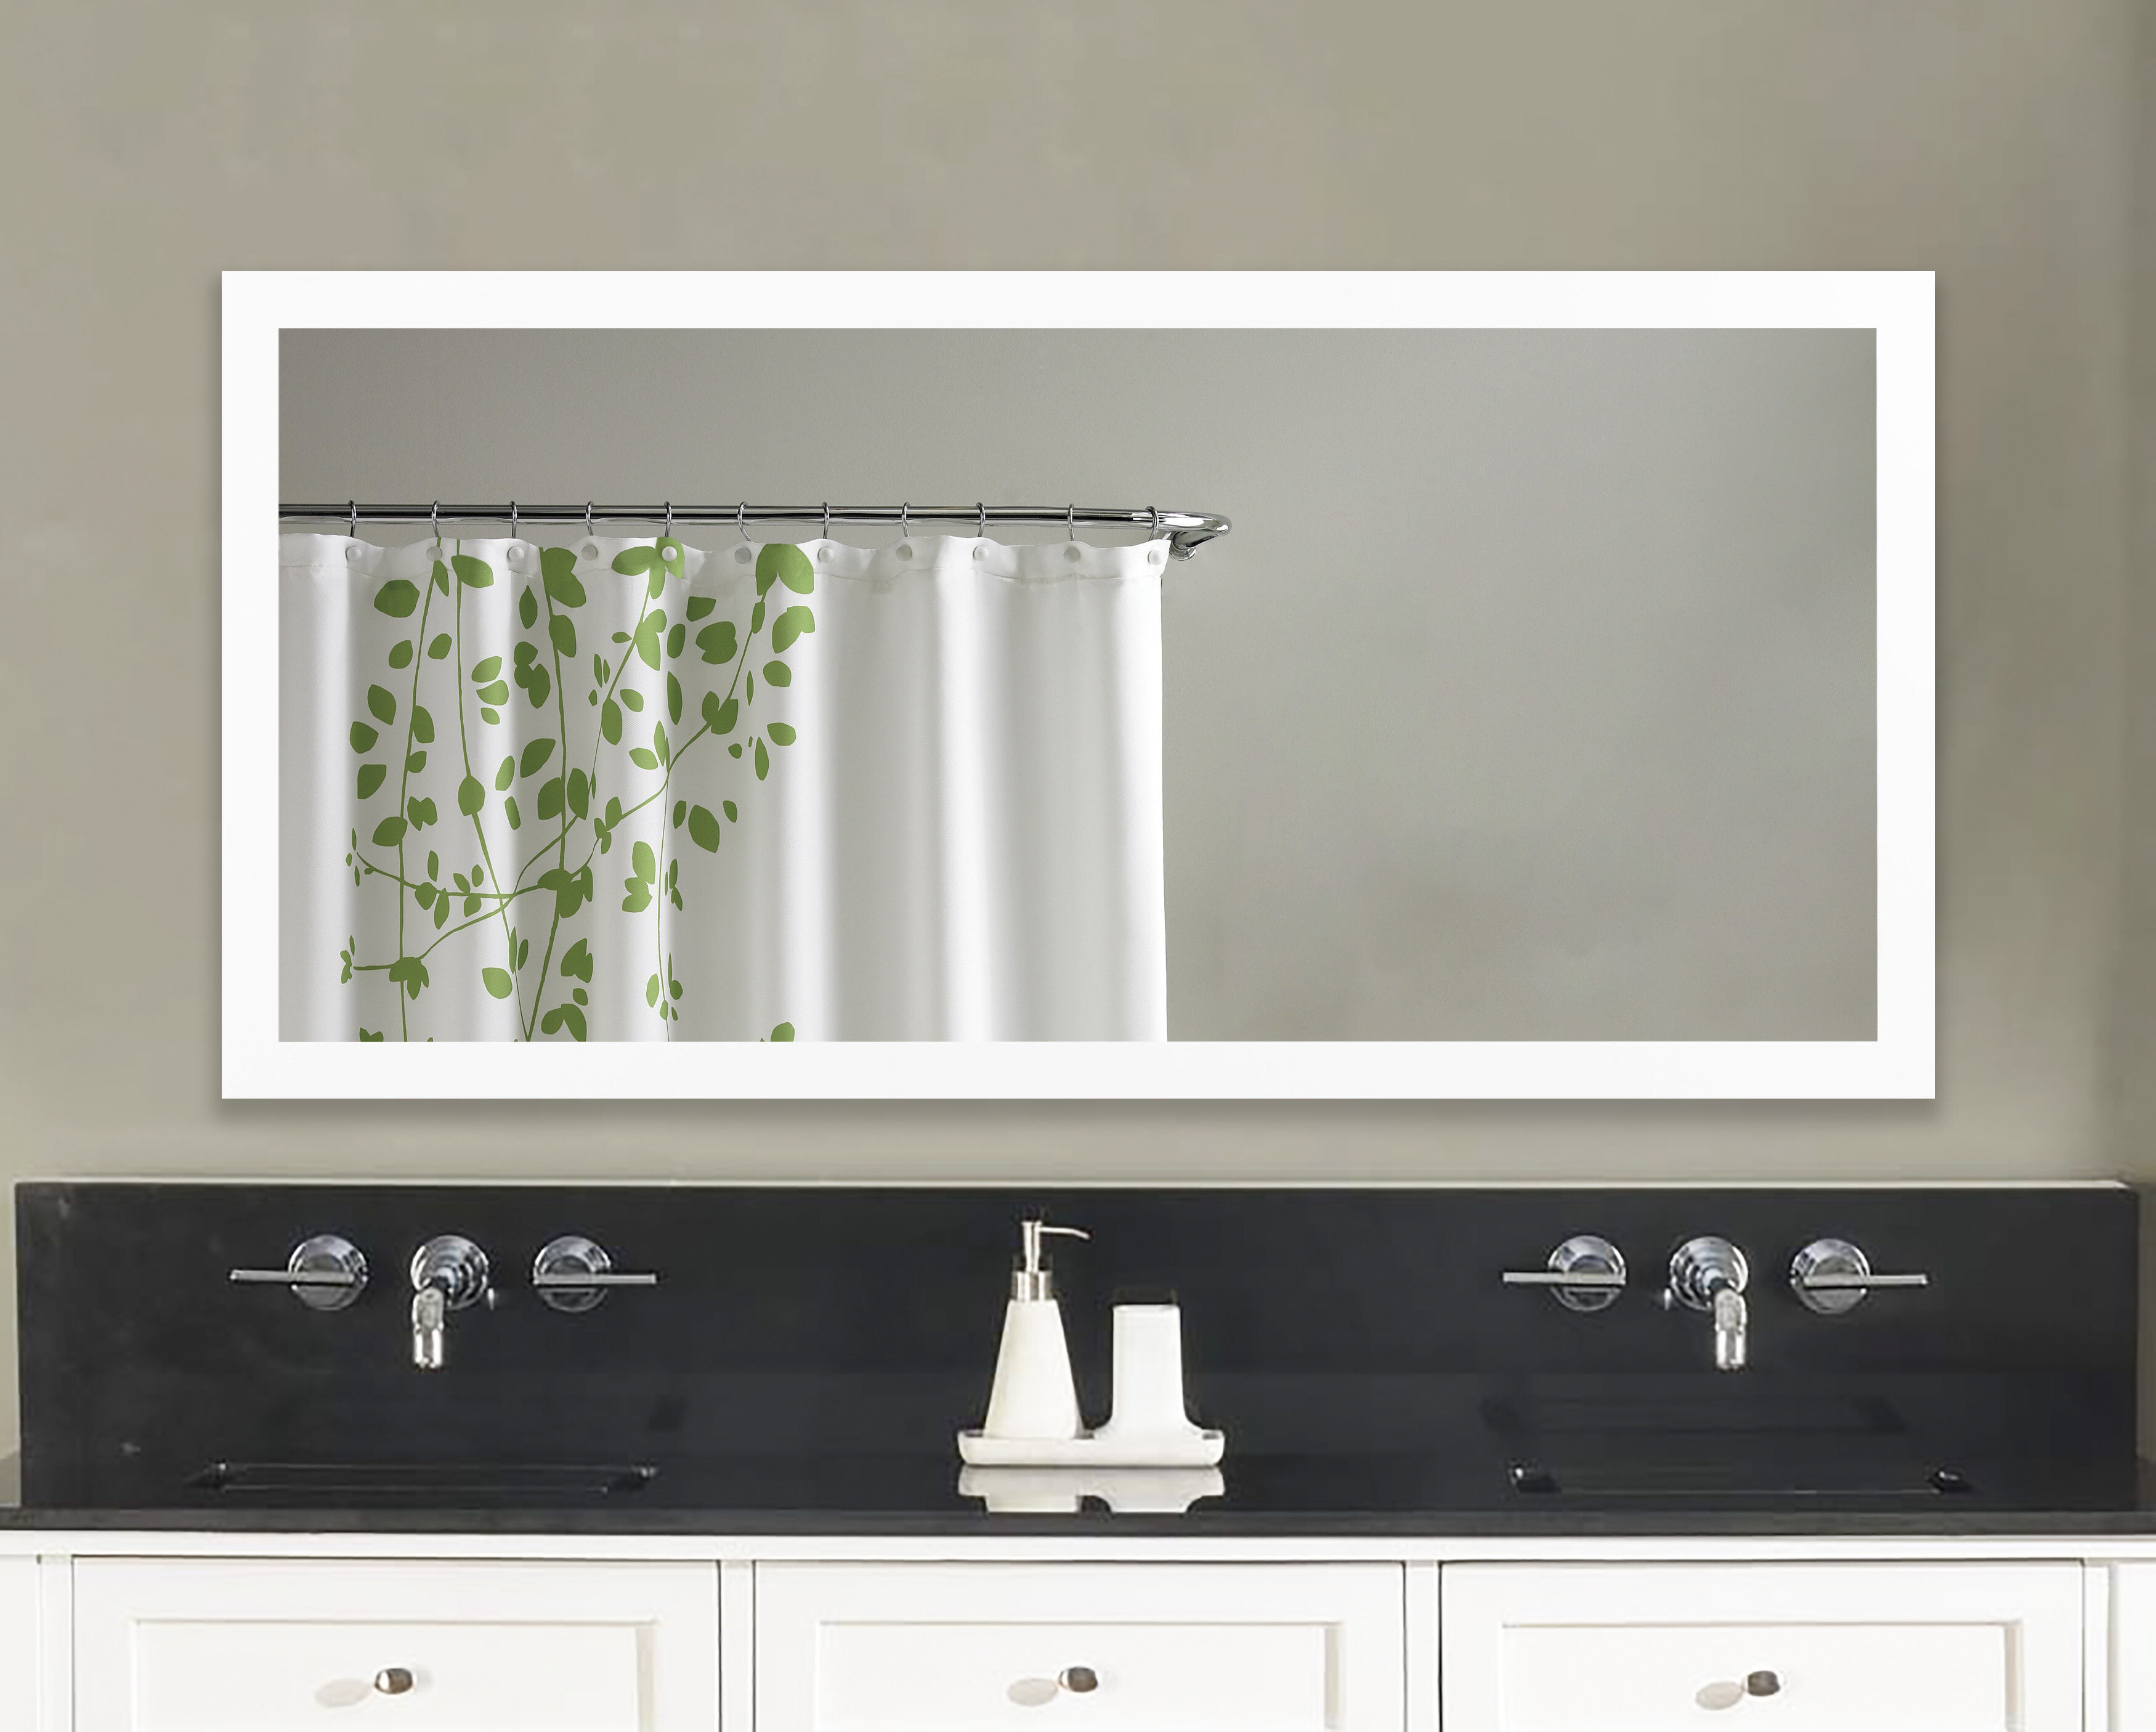 Industrial Modern & Contemporary Wall Mirror Throughout Industrial Modern & Contemporary Wall Mirrors (View 8 of 20)